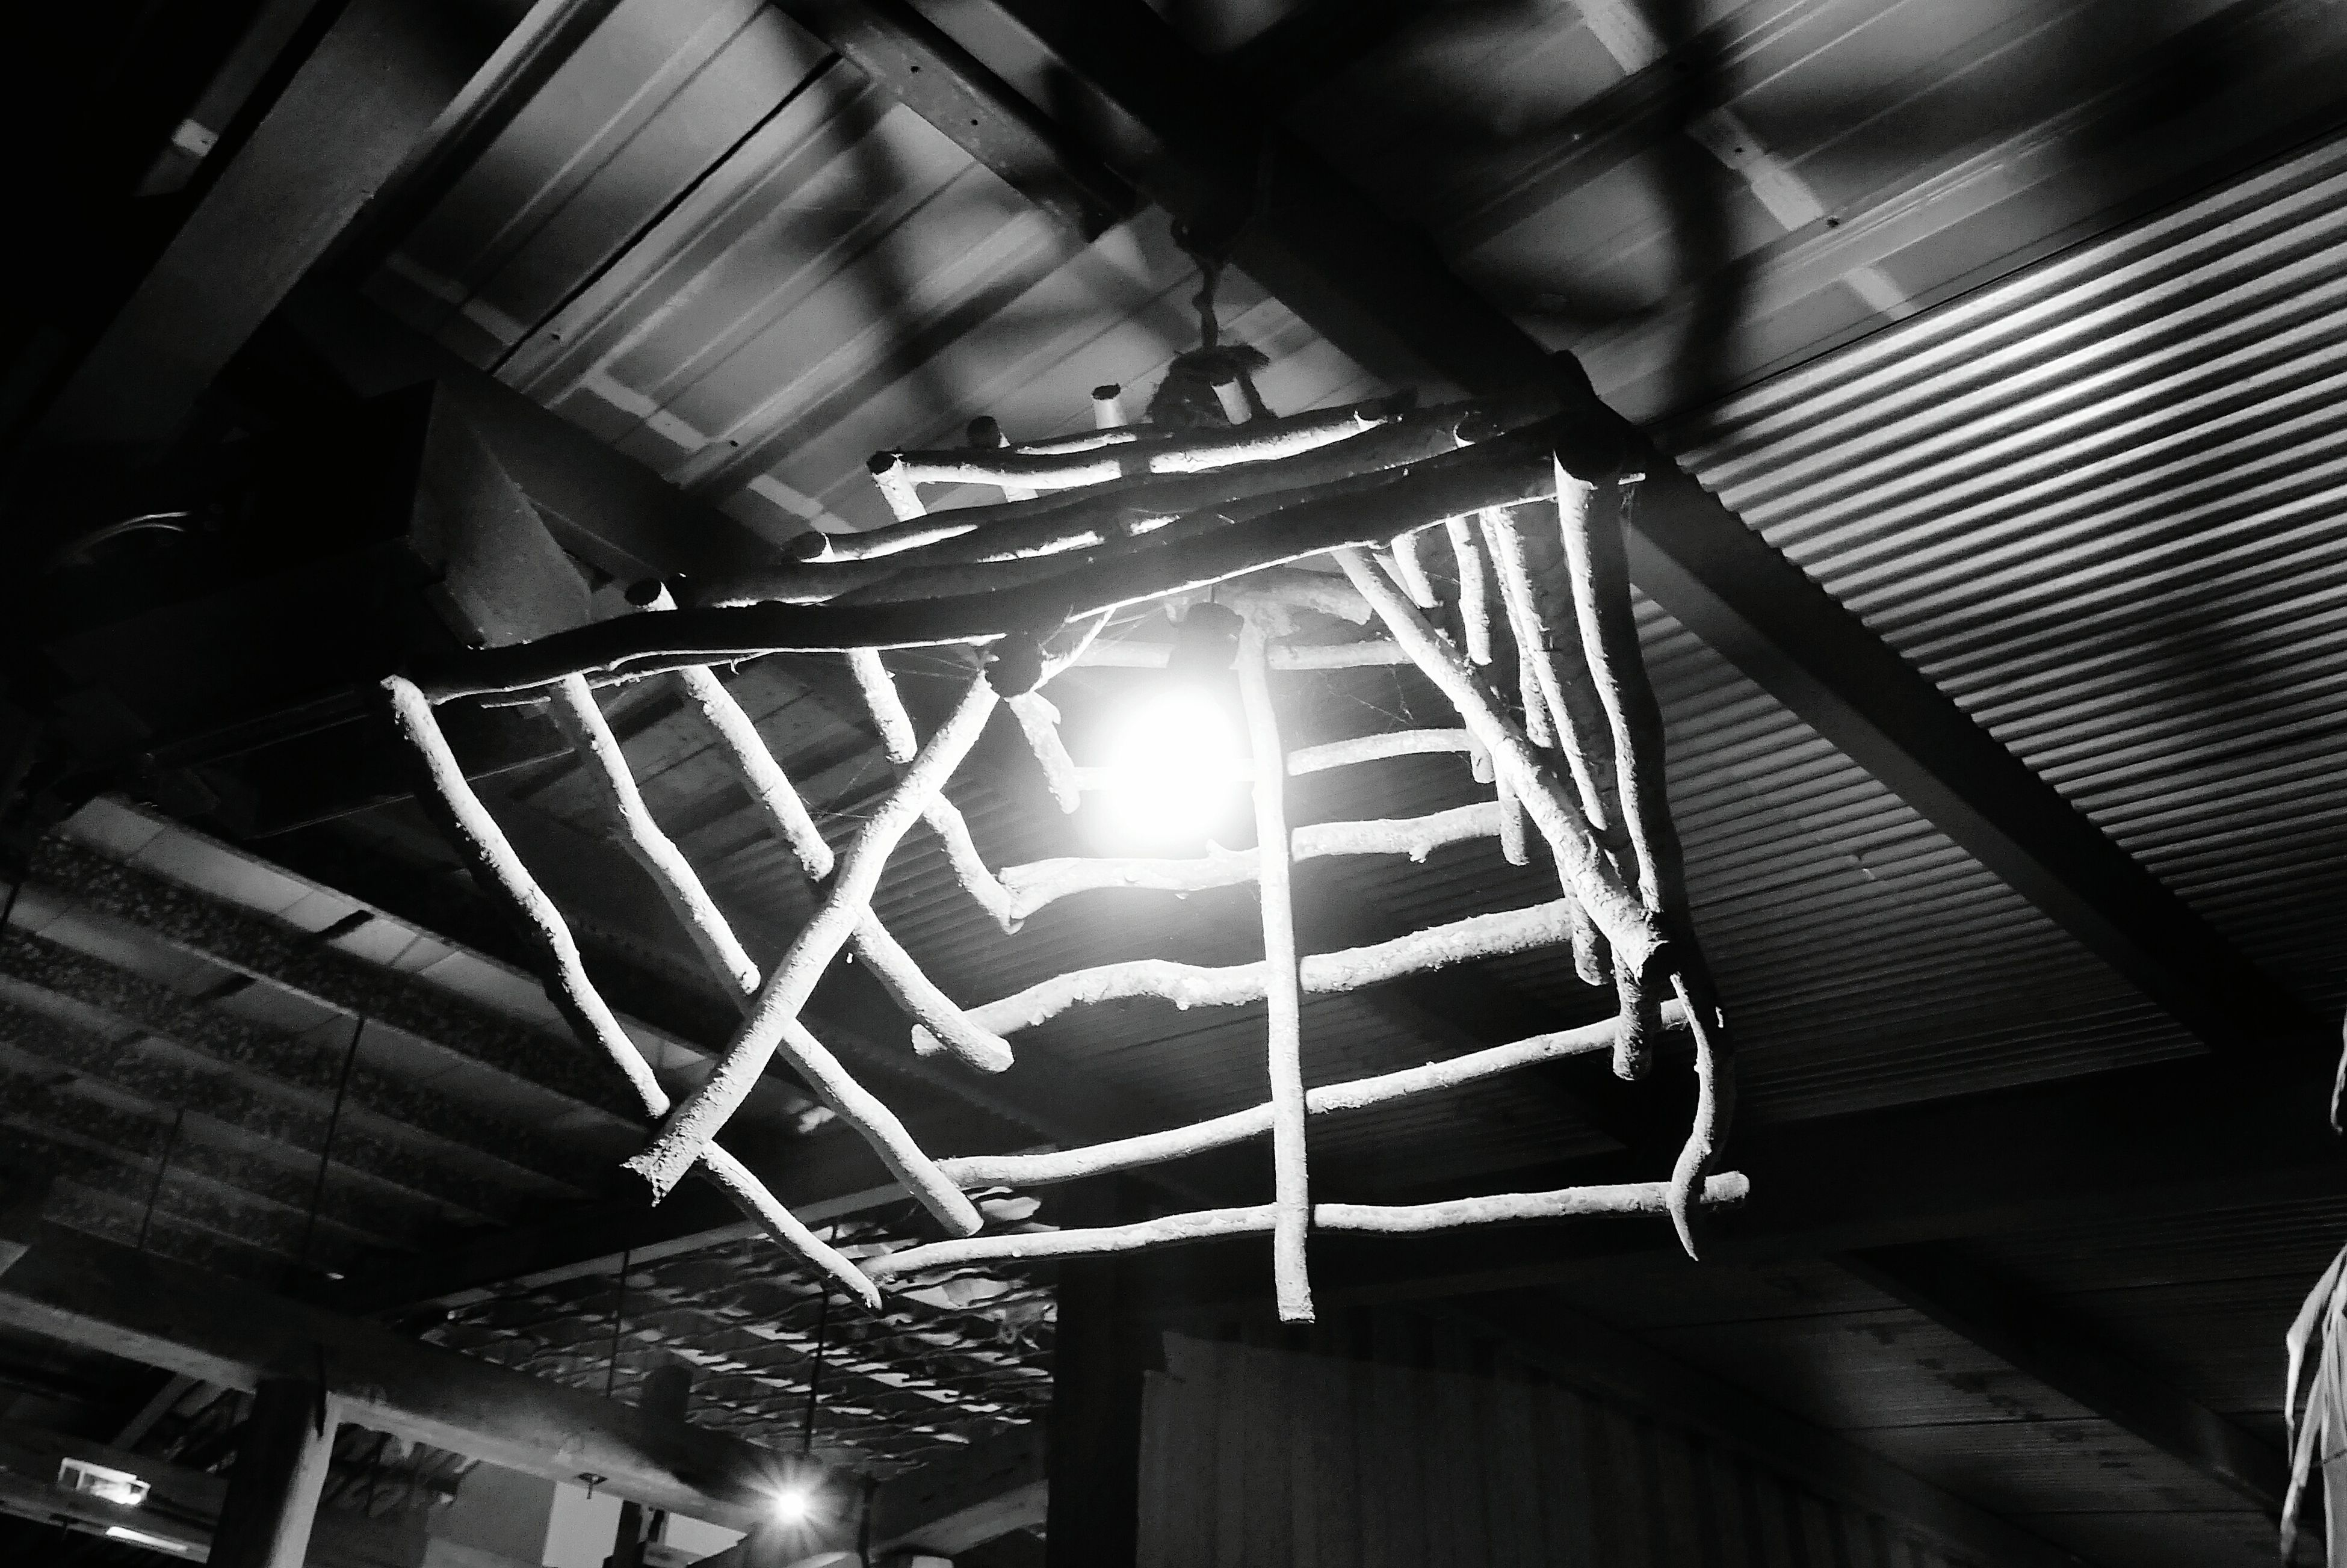 indoors, illuminated, ceiling, low angle view, lighting equipment, hanging, built structure, architecture, night, pattern, in a row, light - natural phenomenon, no people, electric light, decoration, glowing, electricity, design, electric lamp, repetition